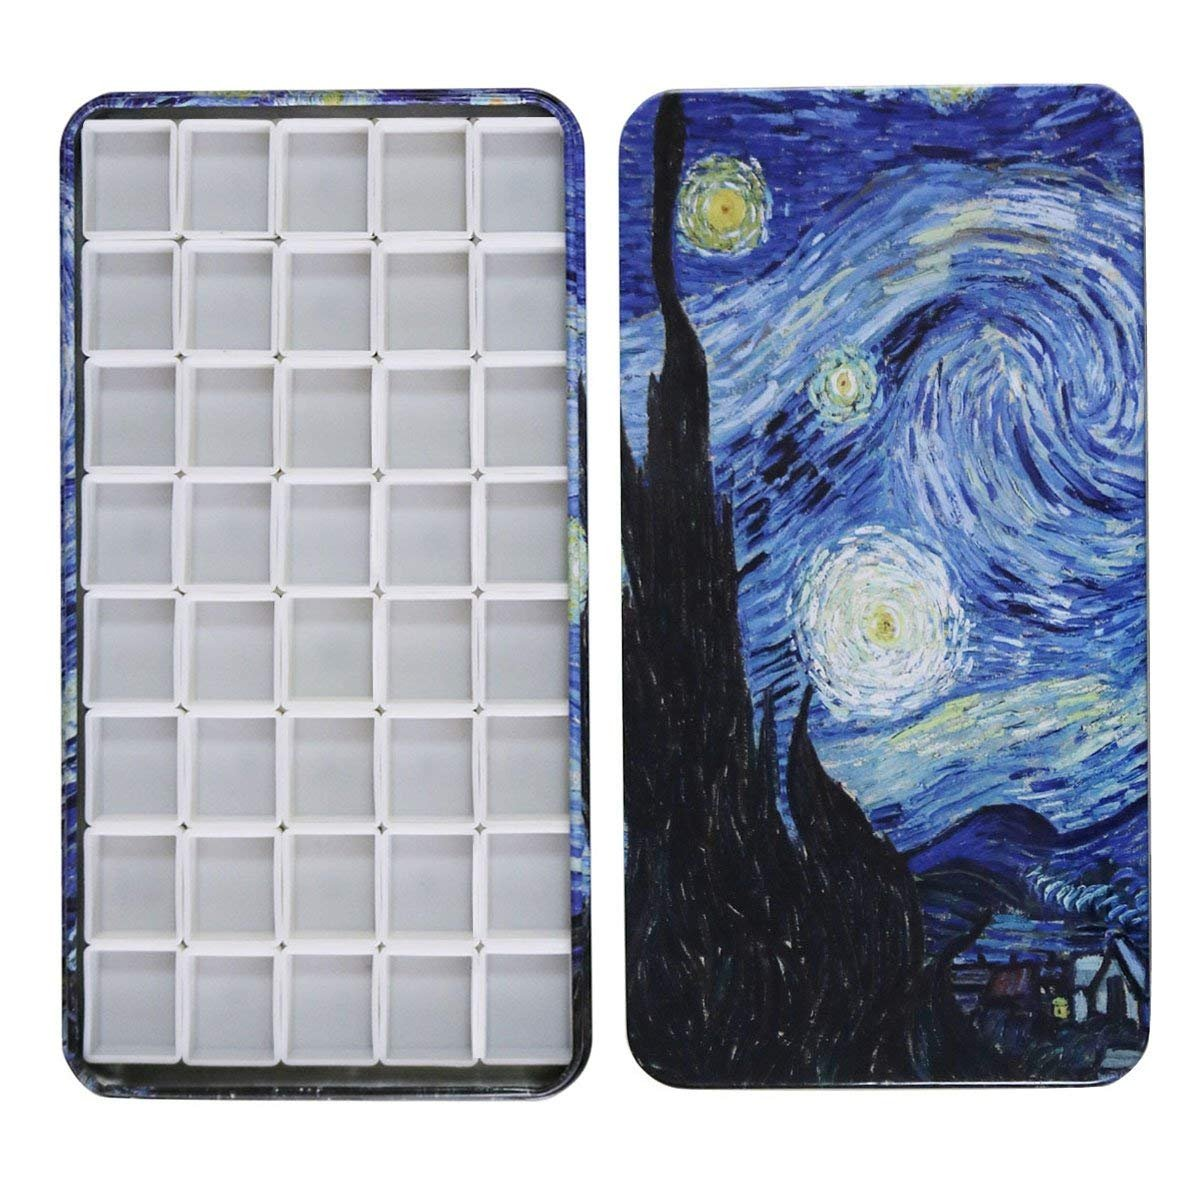 Fclub Watercolor Tins Palette Paint Case with 40Pcs Half Pans Carrying Magnetic Stripe on The Bottom - Starry Night by Vincent Van Gosh 4336974719